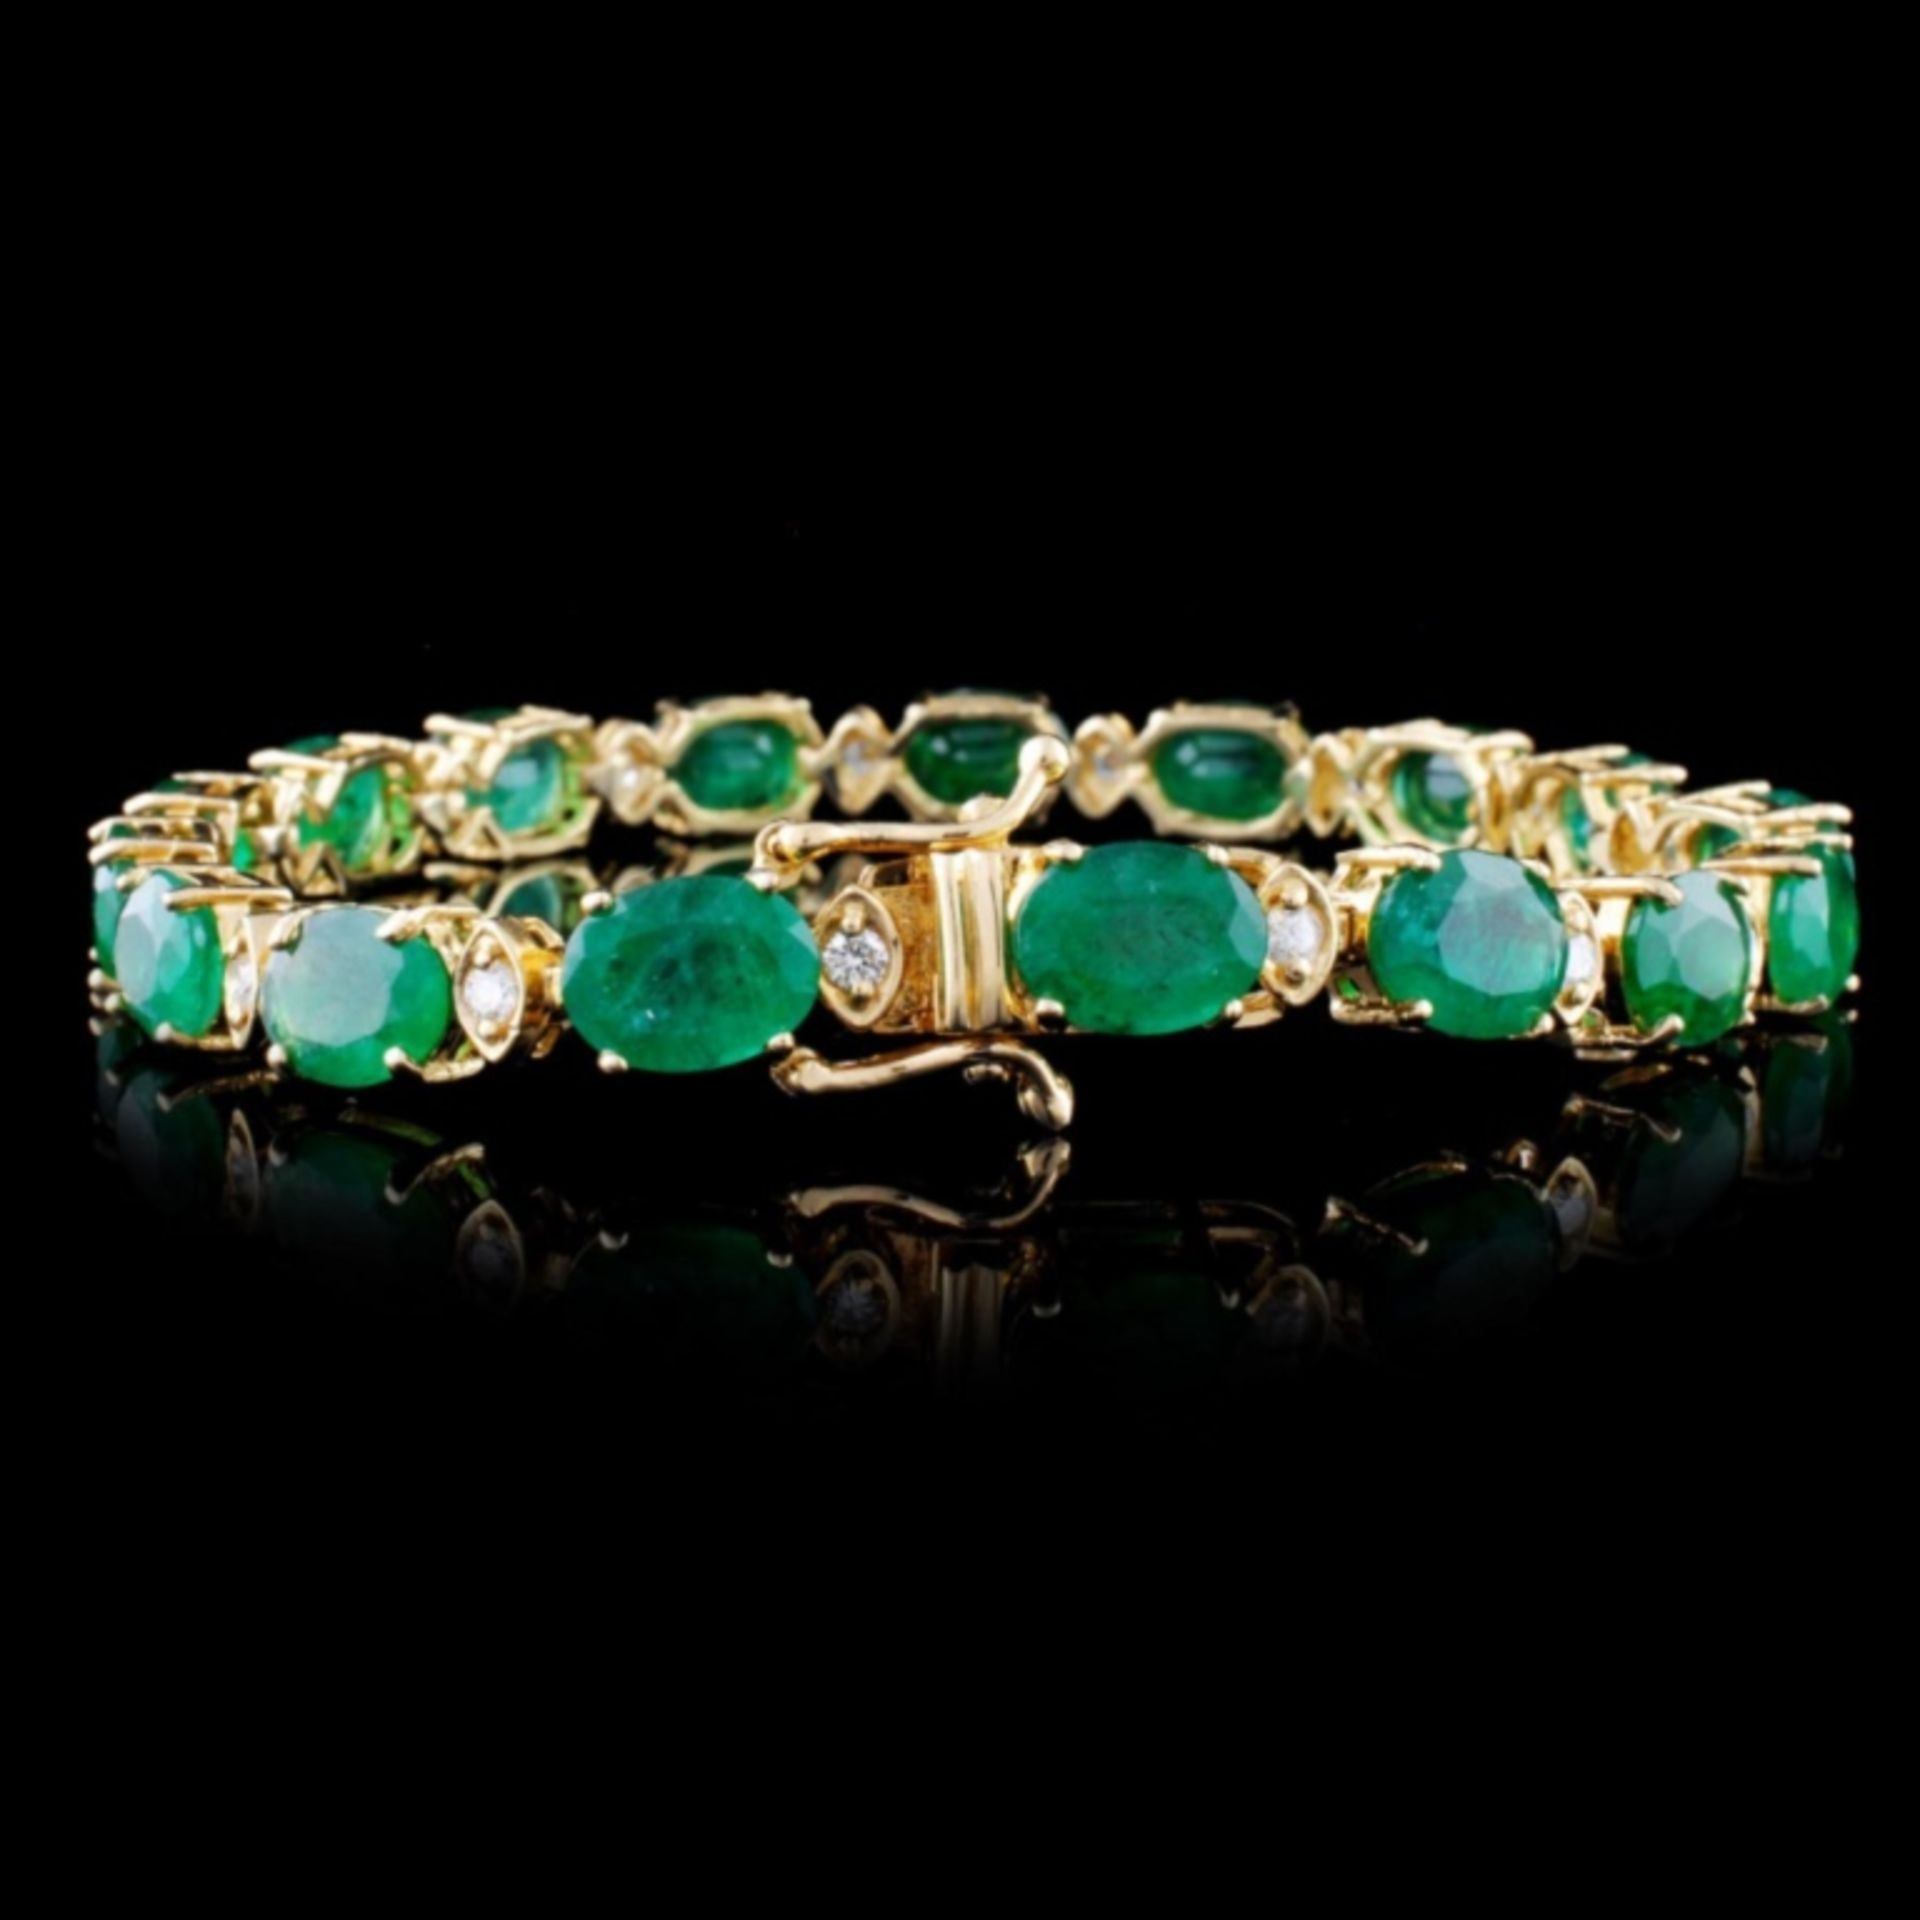 14K Gold 30.00ct Emerald & 1.50ct Diamond Bracelet - Image 2 of 3